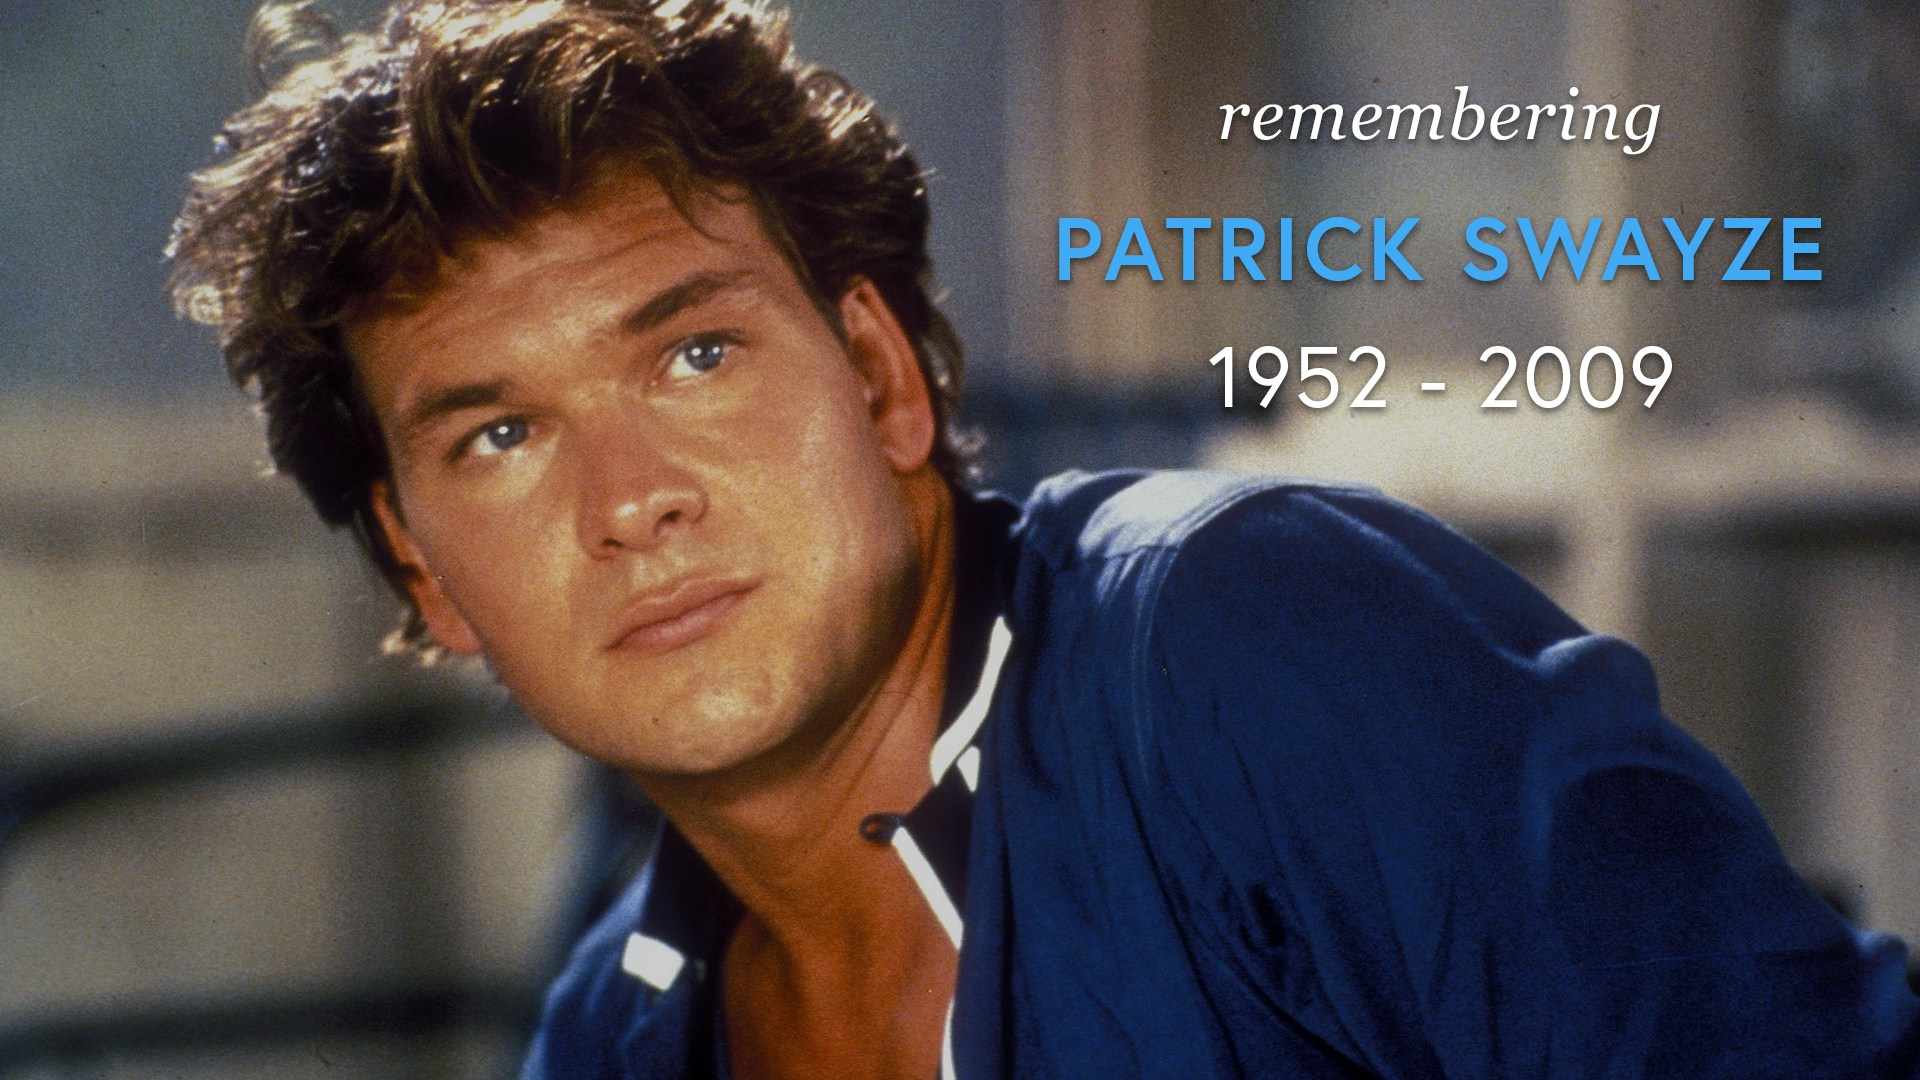 Remembering Patrick Swayze (1952 - 2009) screen capture